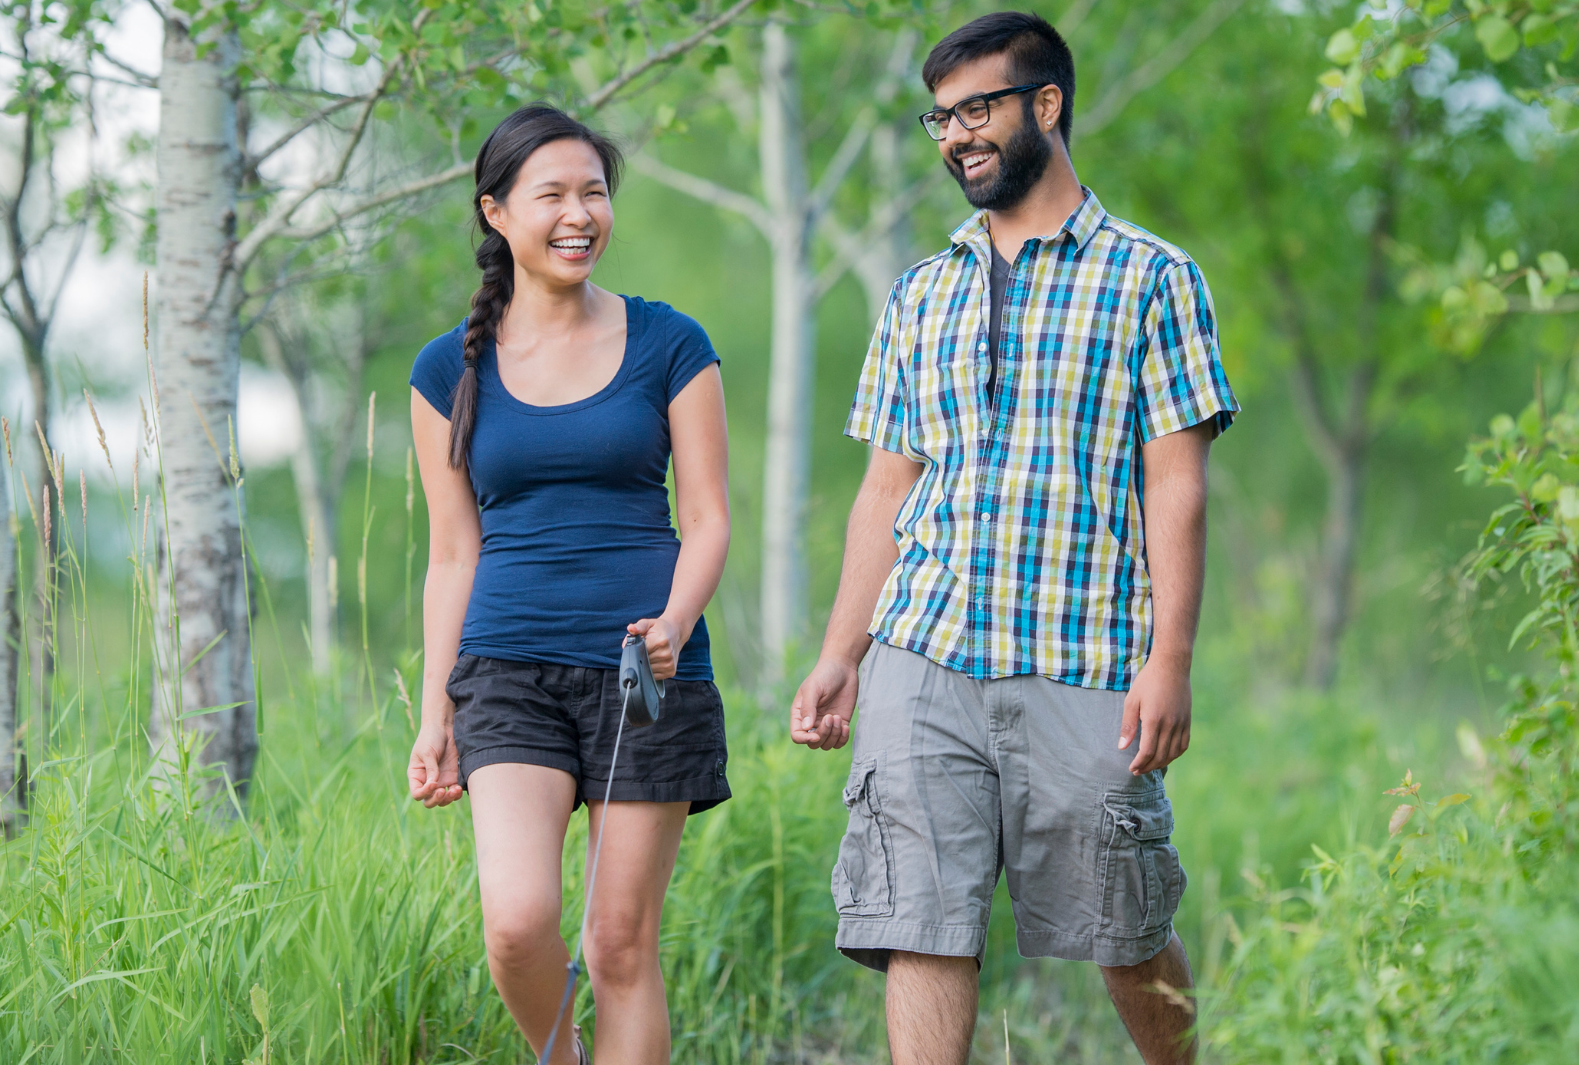 two young adults walking outside together social wellness